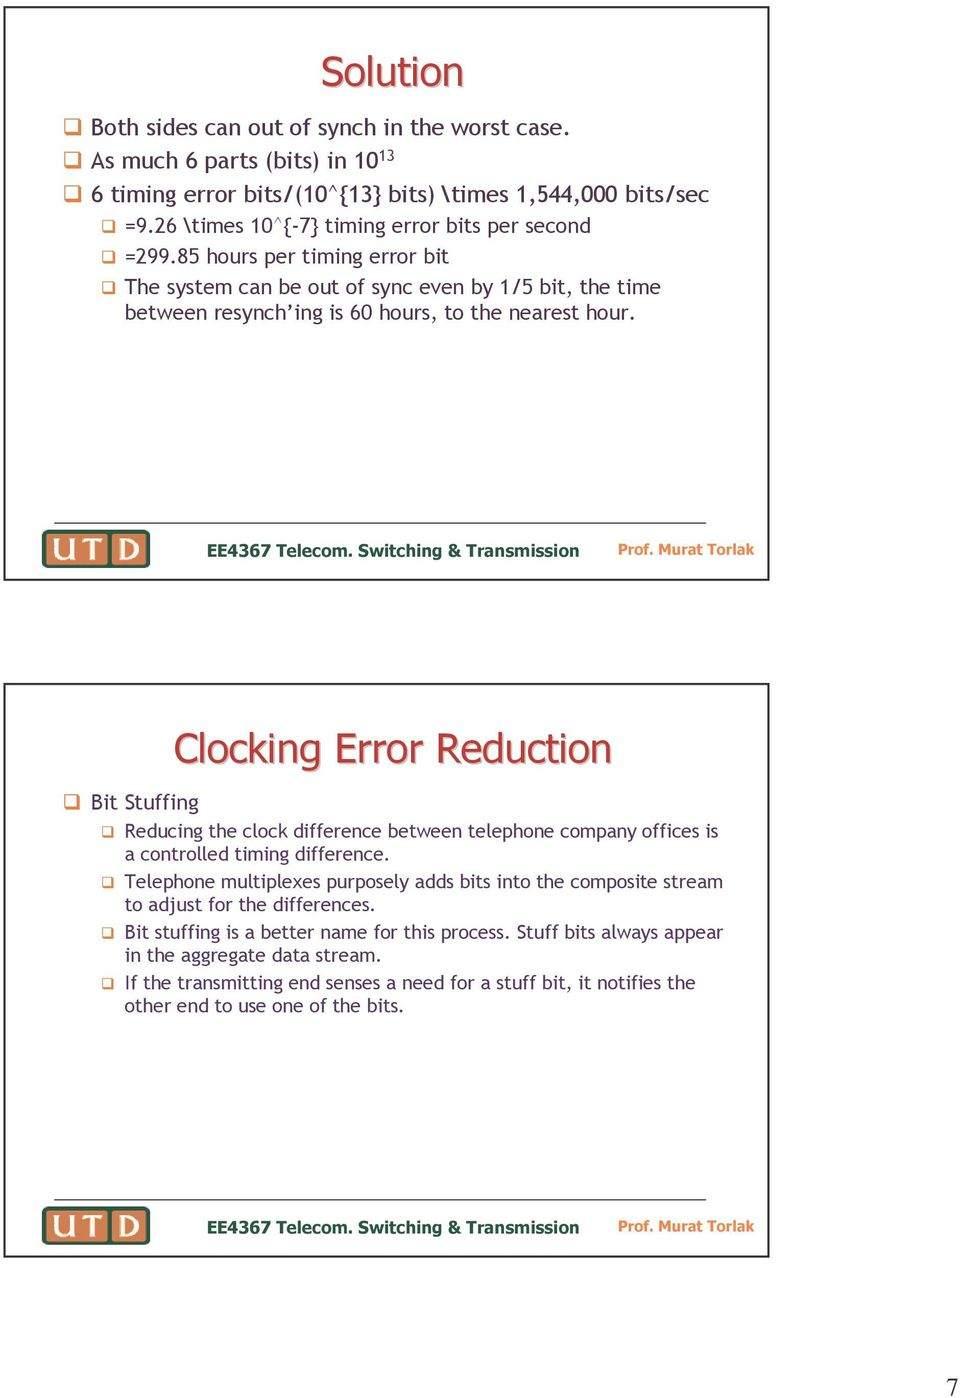 Bit Stuffing Clocking Error Reduction Reducing the clock difference between telephone company offices is a controlled timing difference.